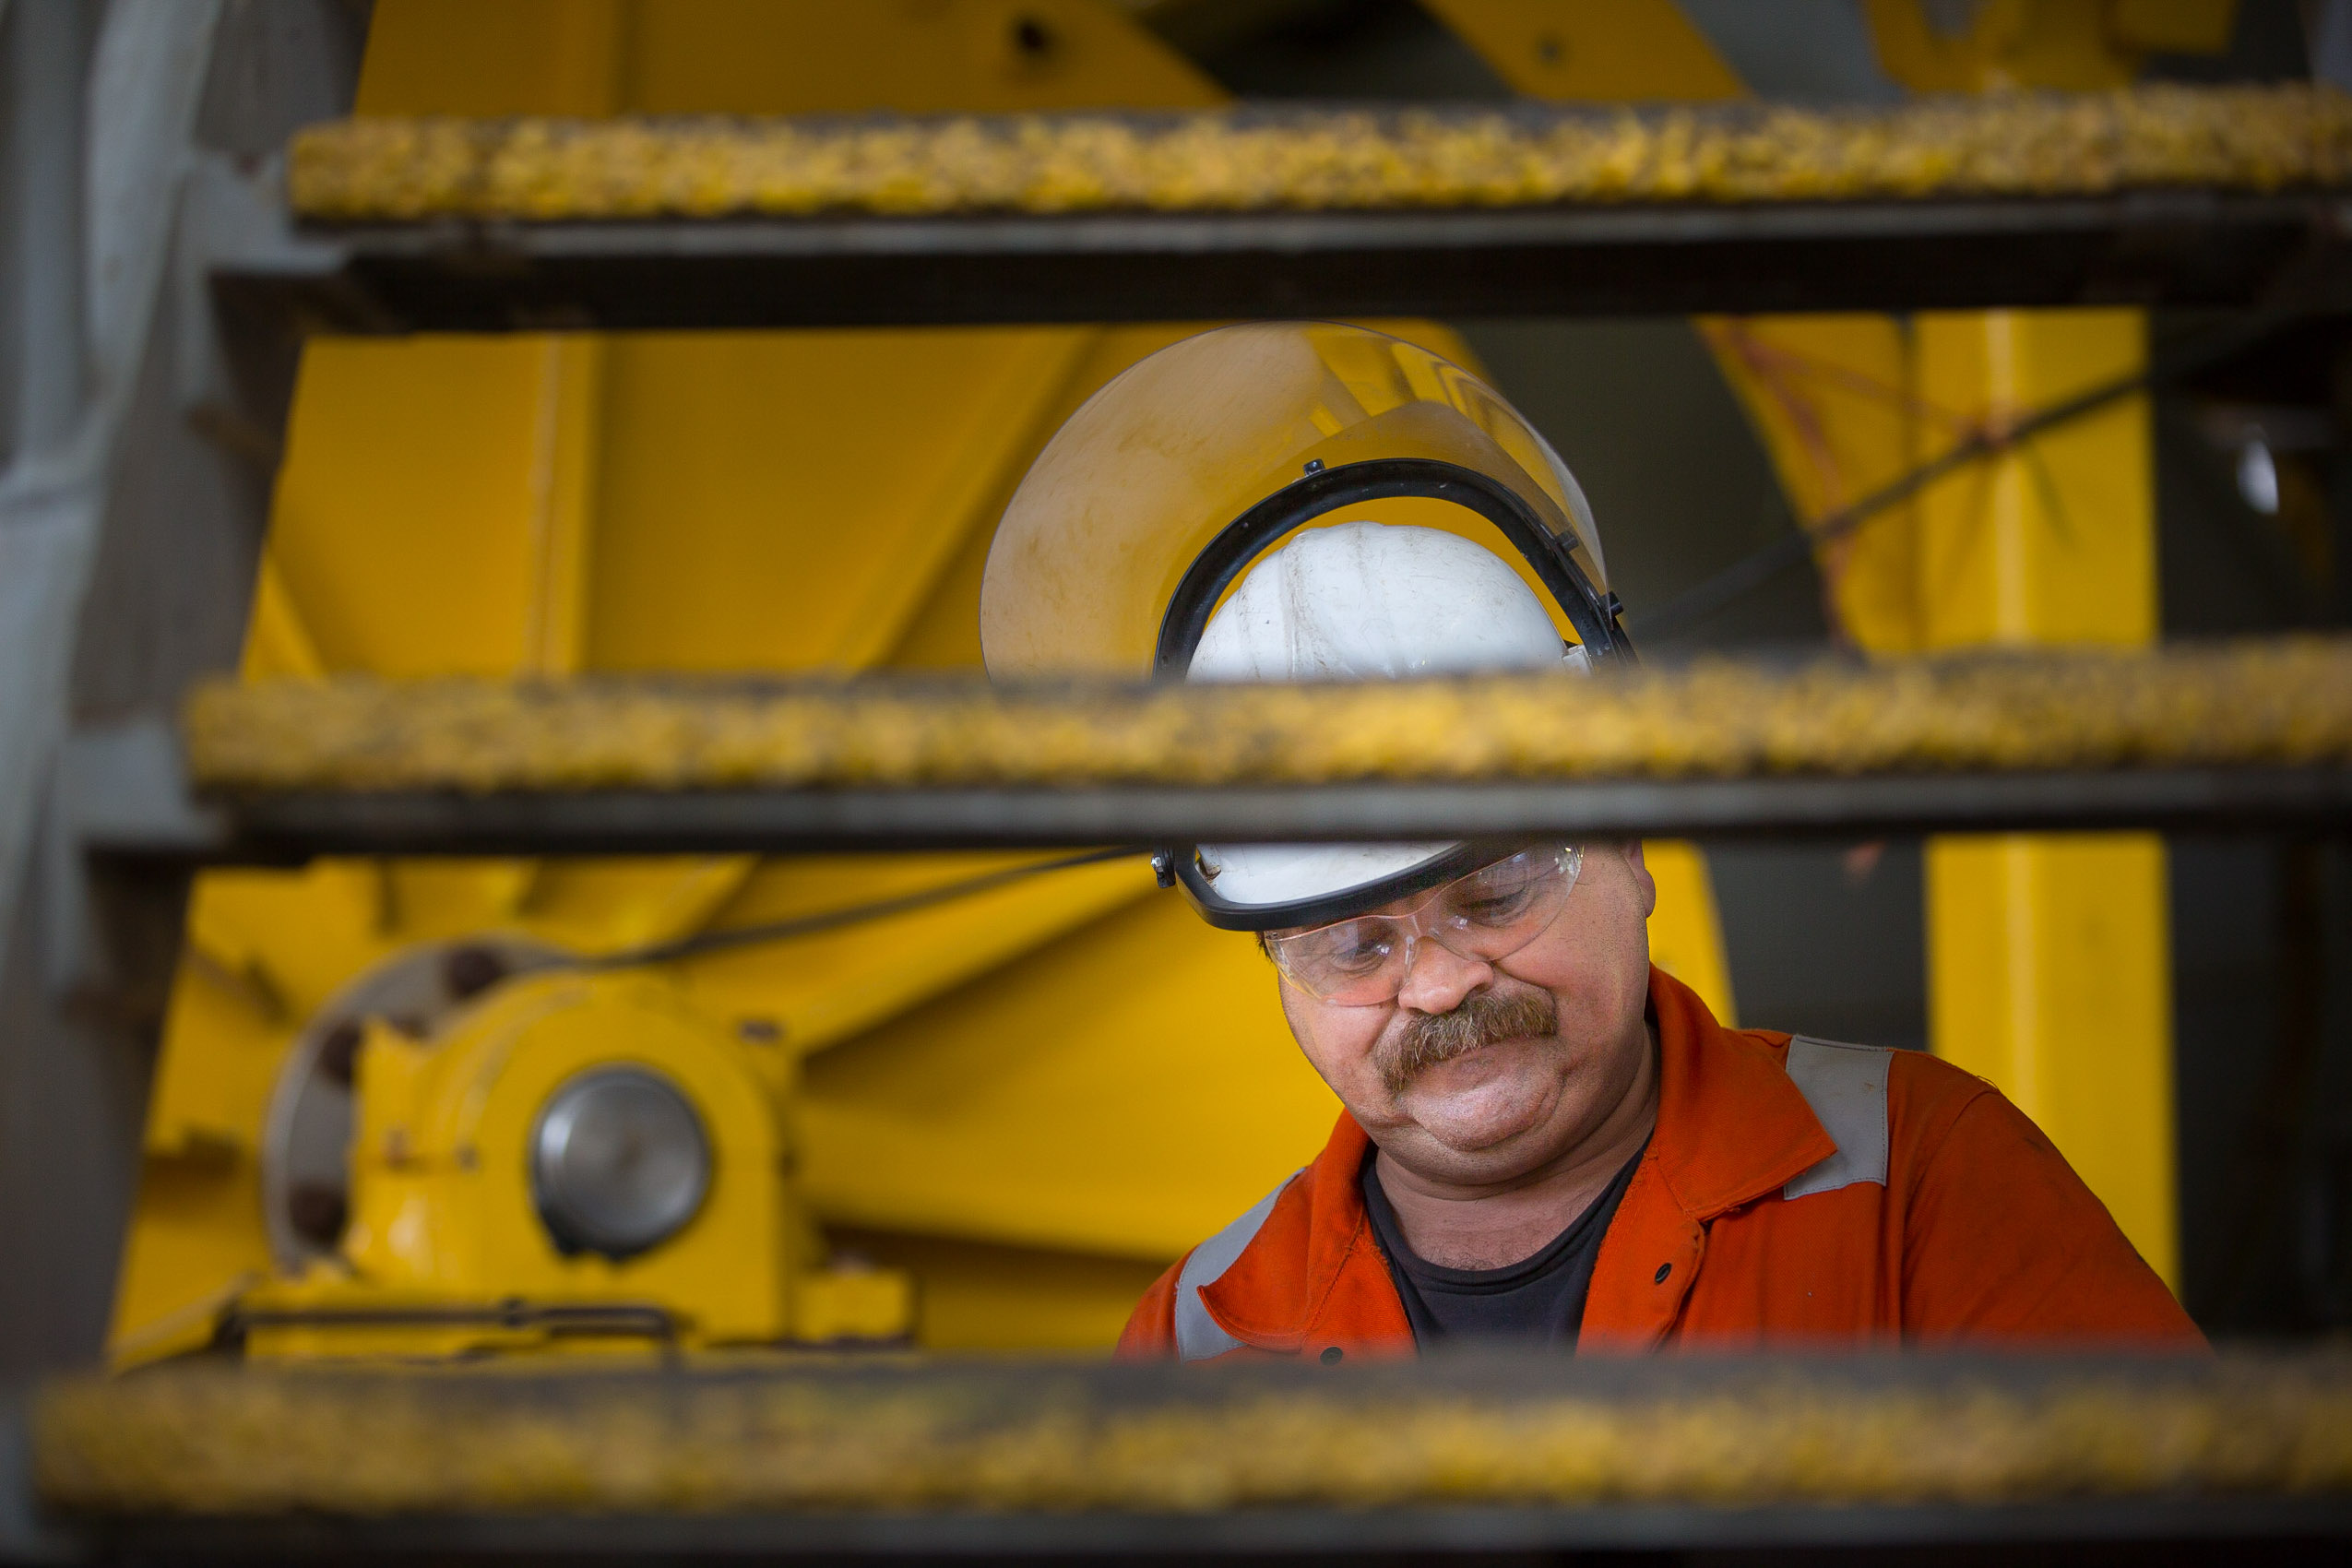 oil rig worker portrait